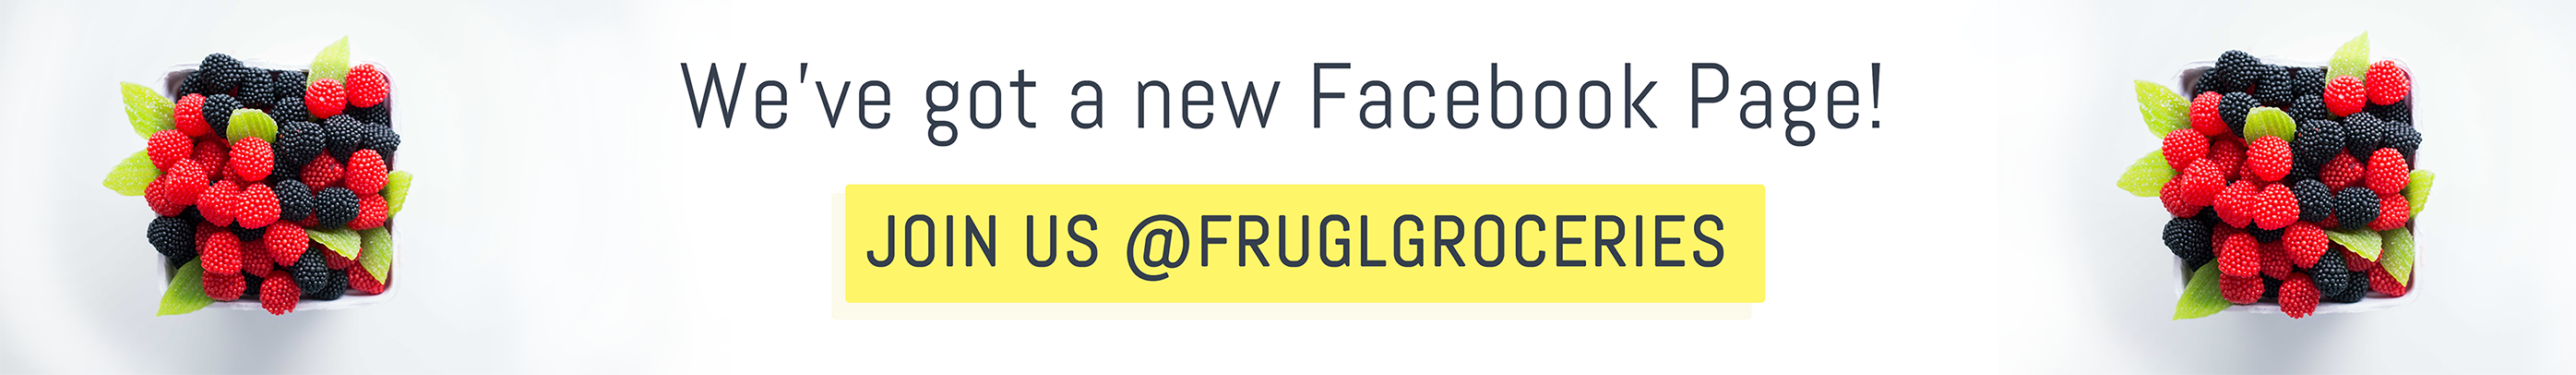 Join us on Facebook at @FruglGroceries